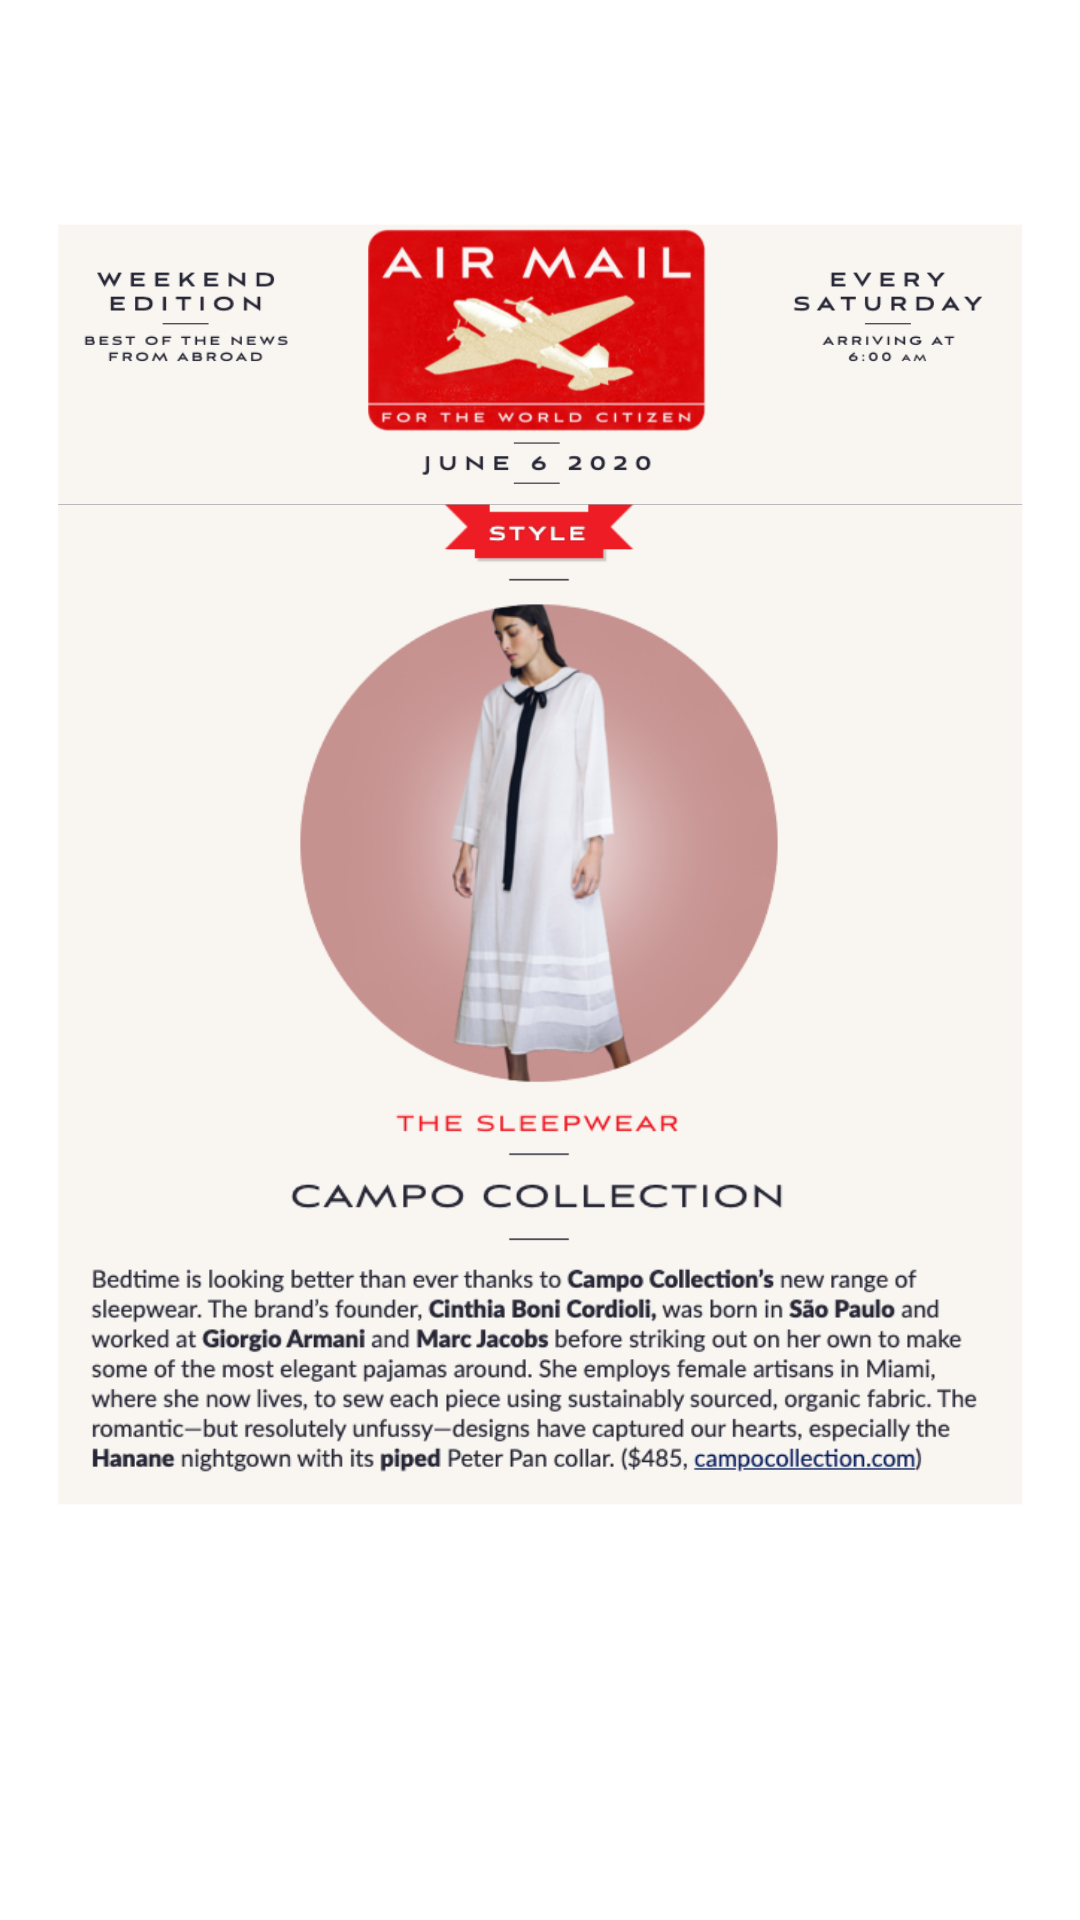 Air Mail - Campo Collection and the Hanane Nightgown